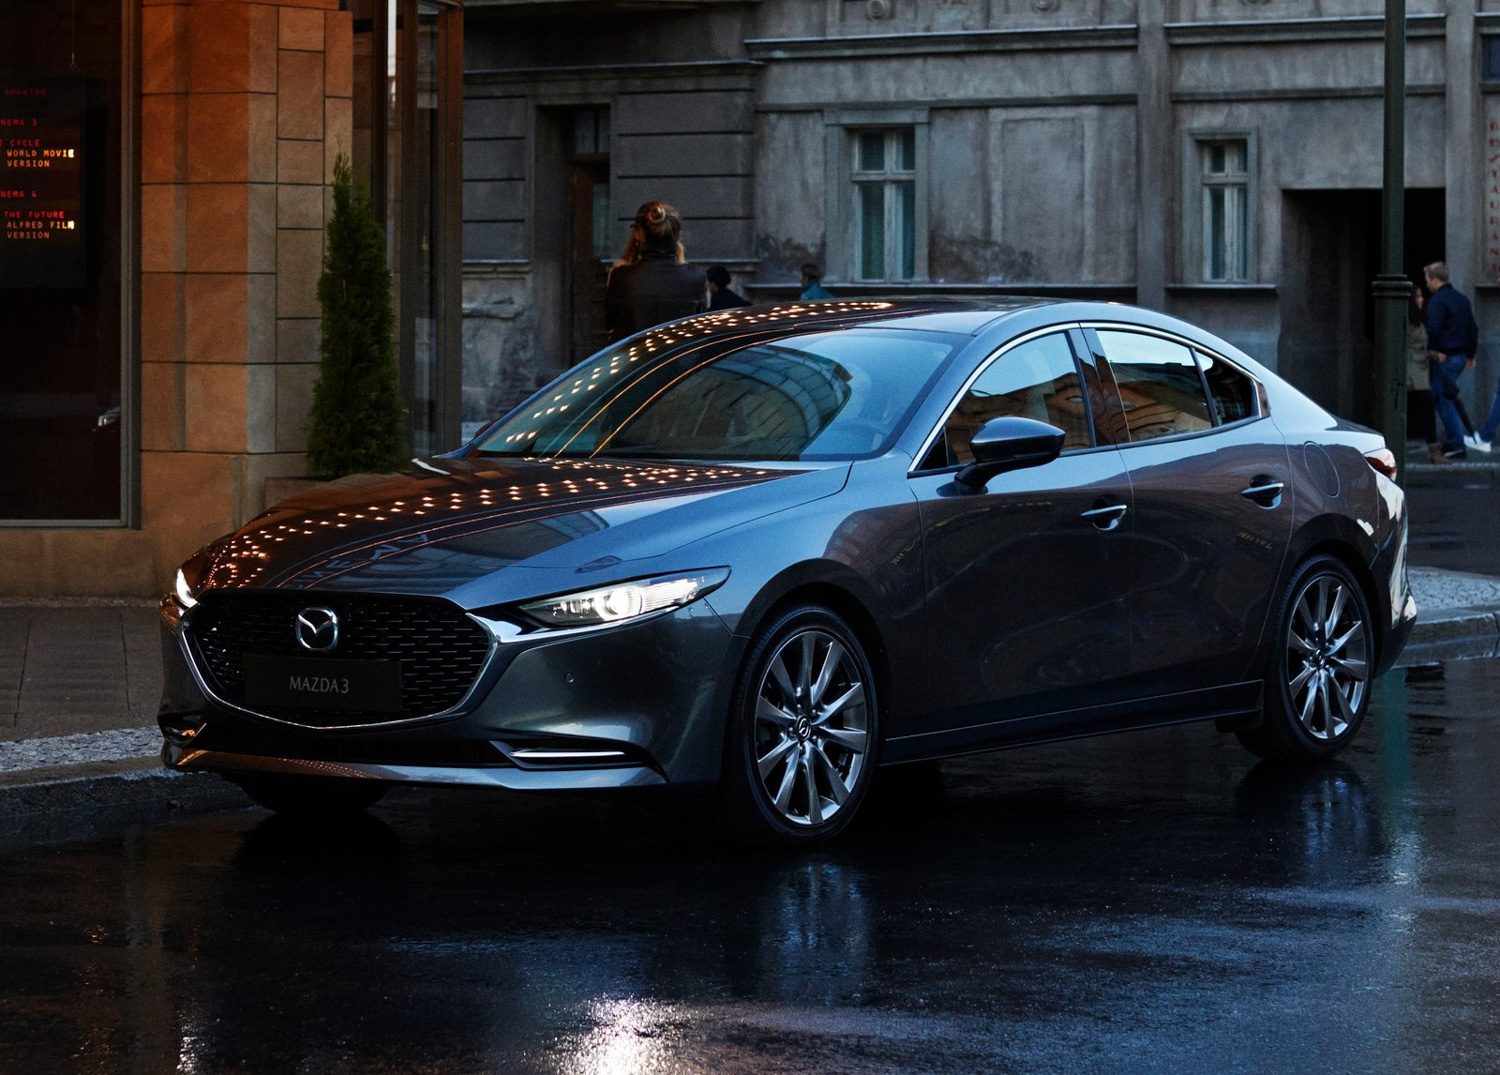 2019 Mazda 3 front grille detail